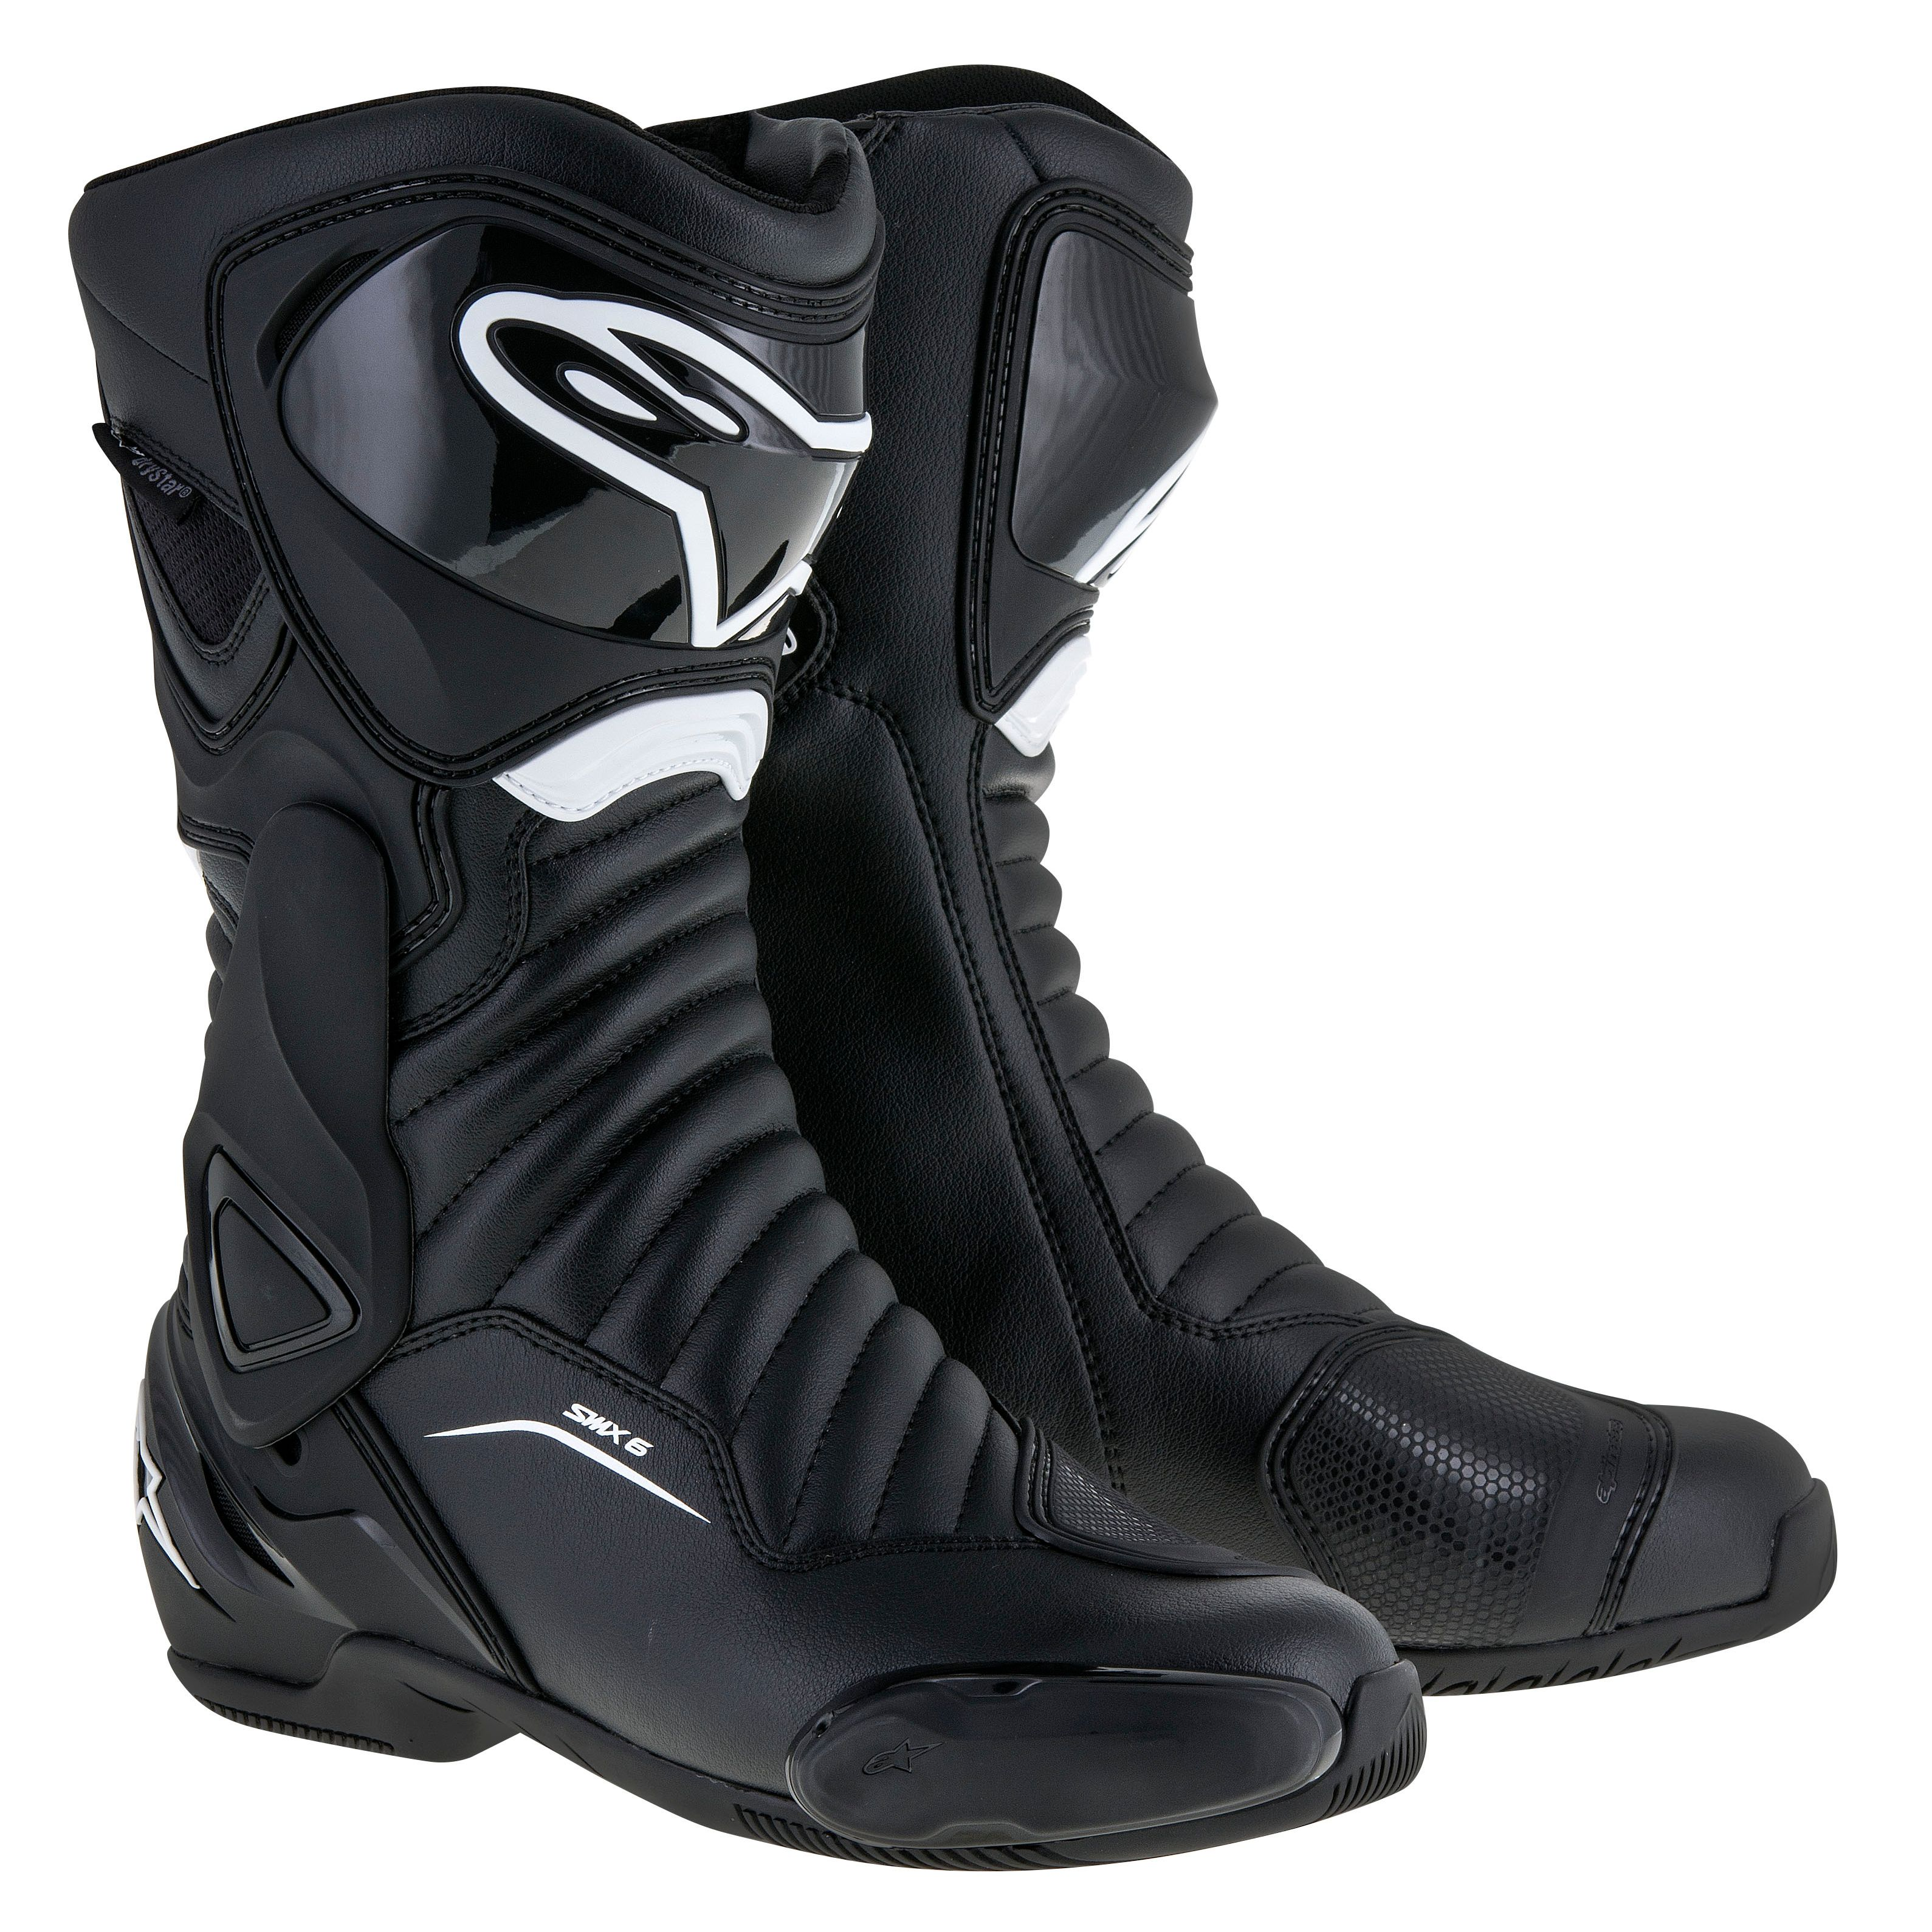 bottes alpinestars smx 6 v2 drystar bottes et chaussures. Black Bedroom Furniture Sets. Home Design Ideas